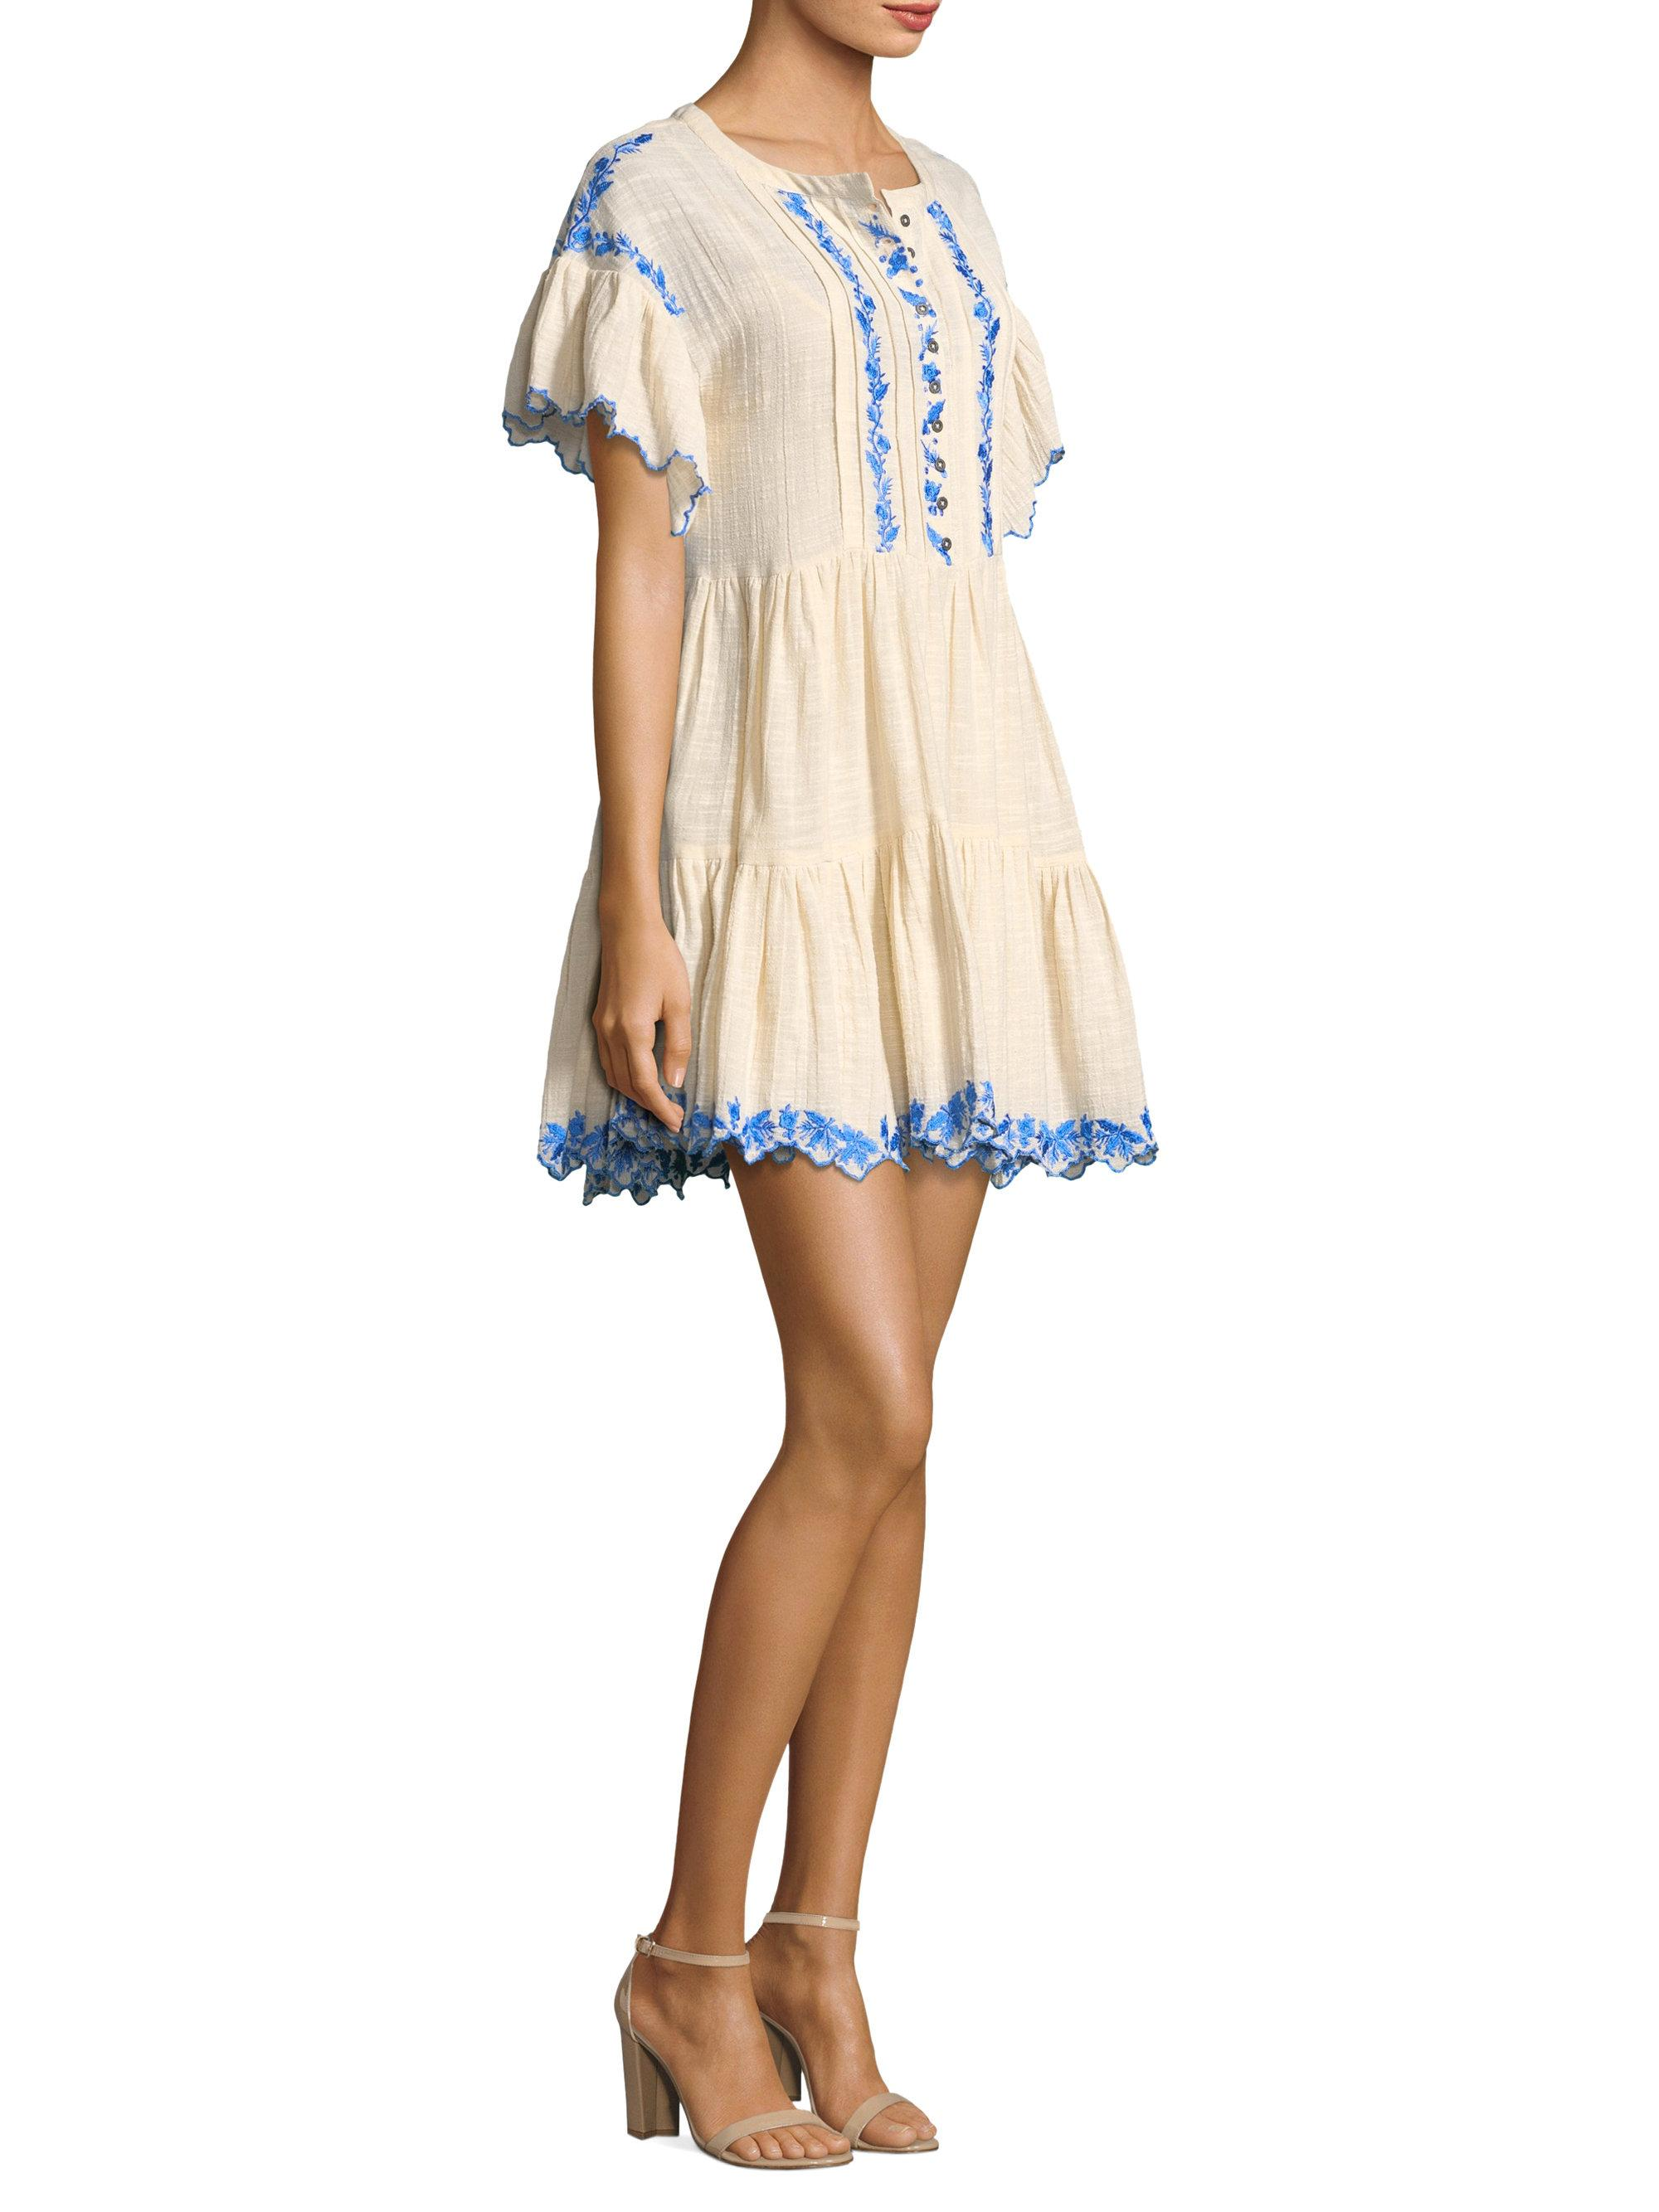 Home; Free People Marcella Embroidered Mini Dress. image.AlternateText